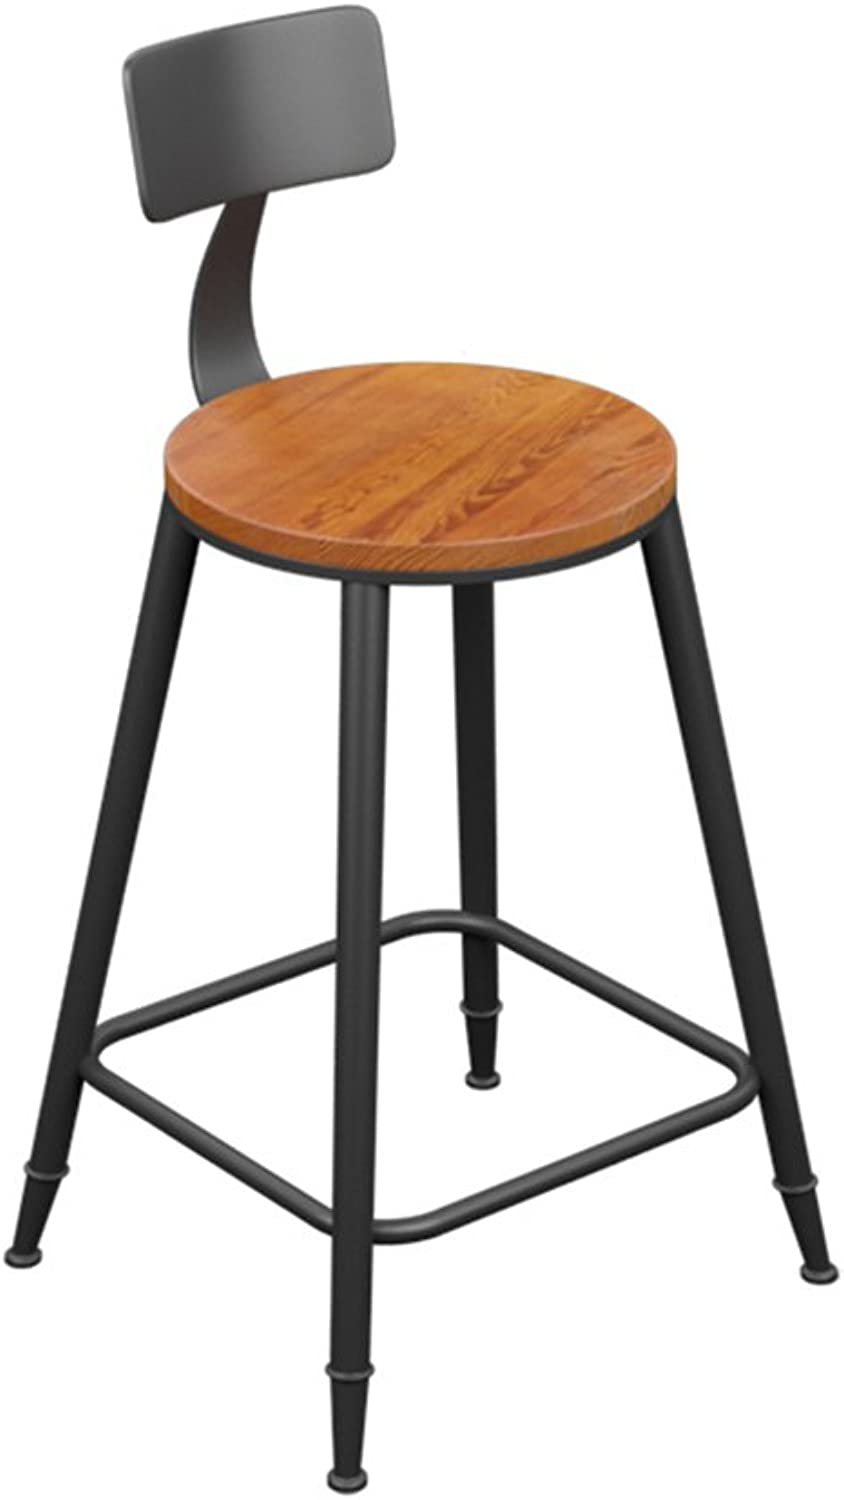 Nationwel@ Bar Stool - Vintage Wood Wrought Iron Bar Chair Bar Stool Simple High Stool Backrest Front Desk Chair (Multiple (Size   40  40  88cm)